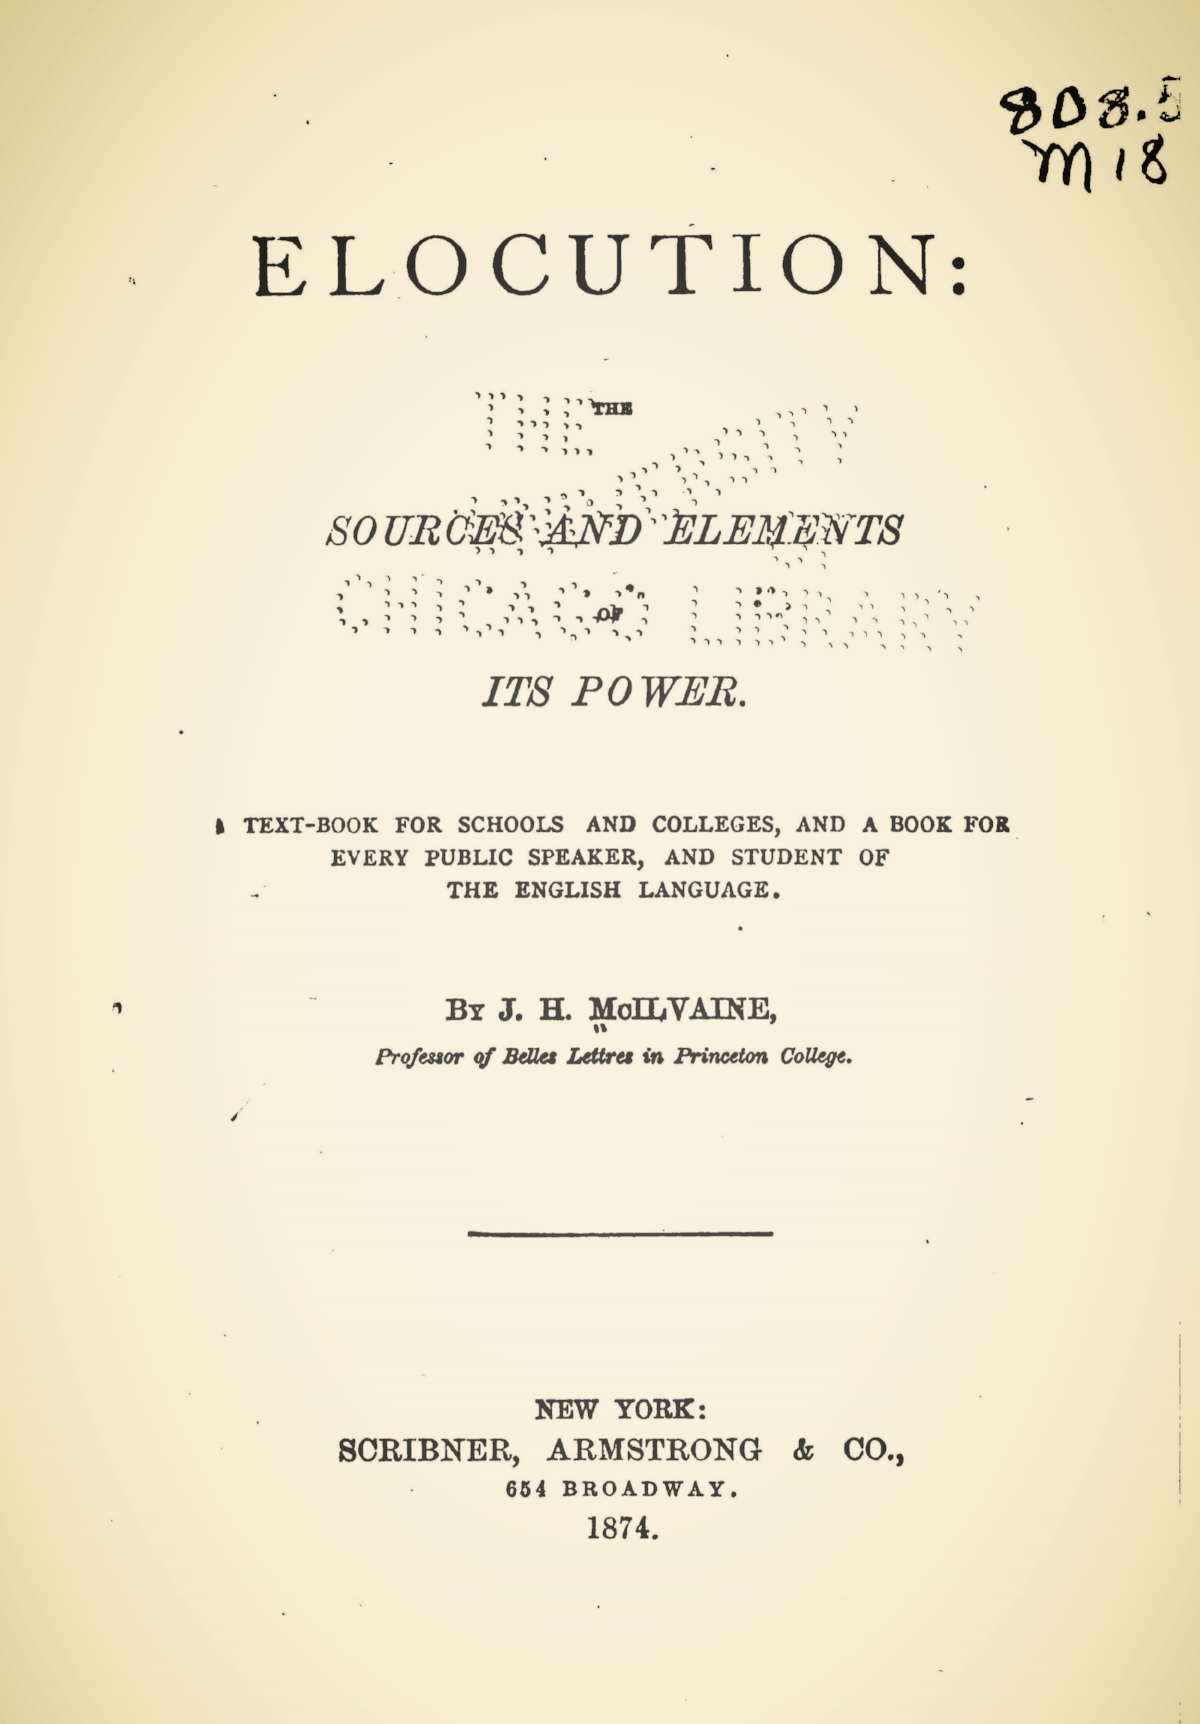 McIlvaine, Joshua Hall, Elocution the Sources and Elements of Power Title Page.jpg